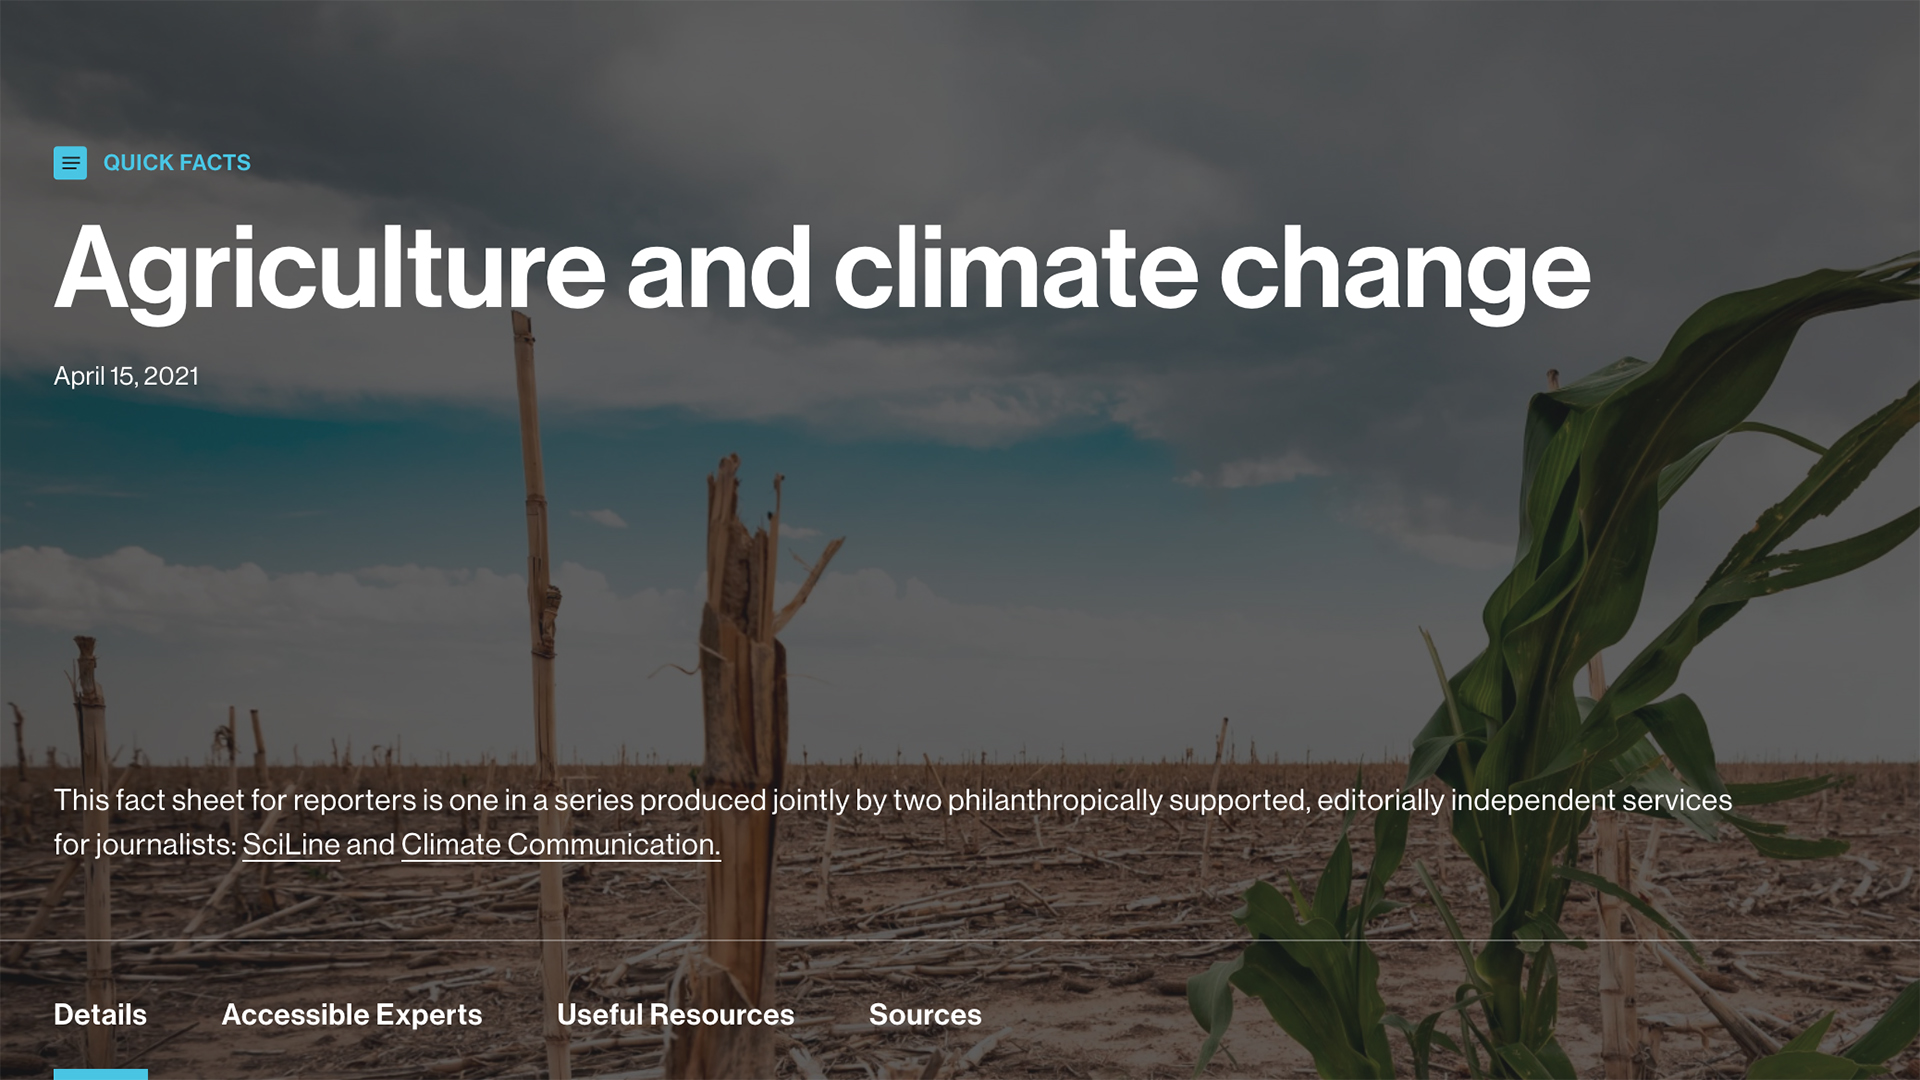 homepage featuring agriculture and climate change information